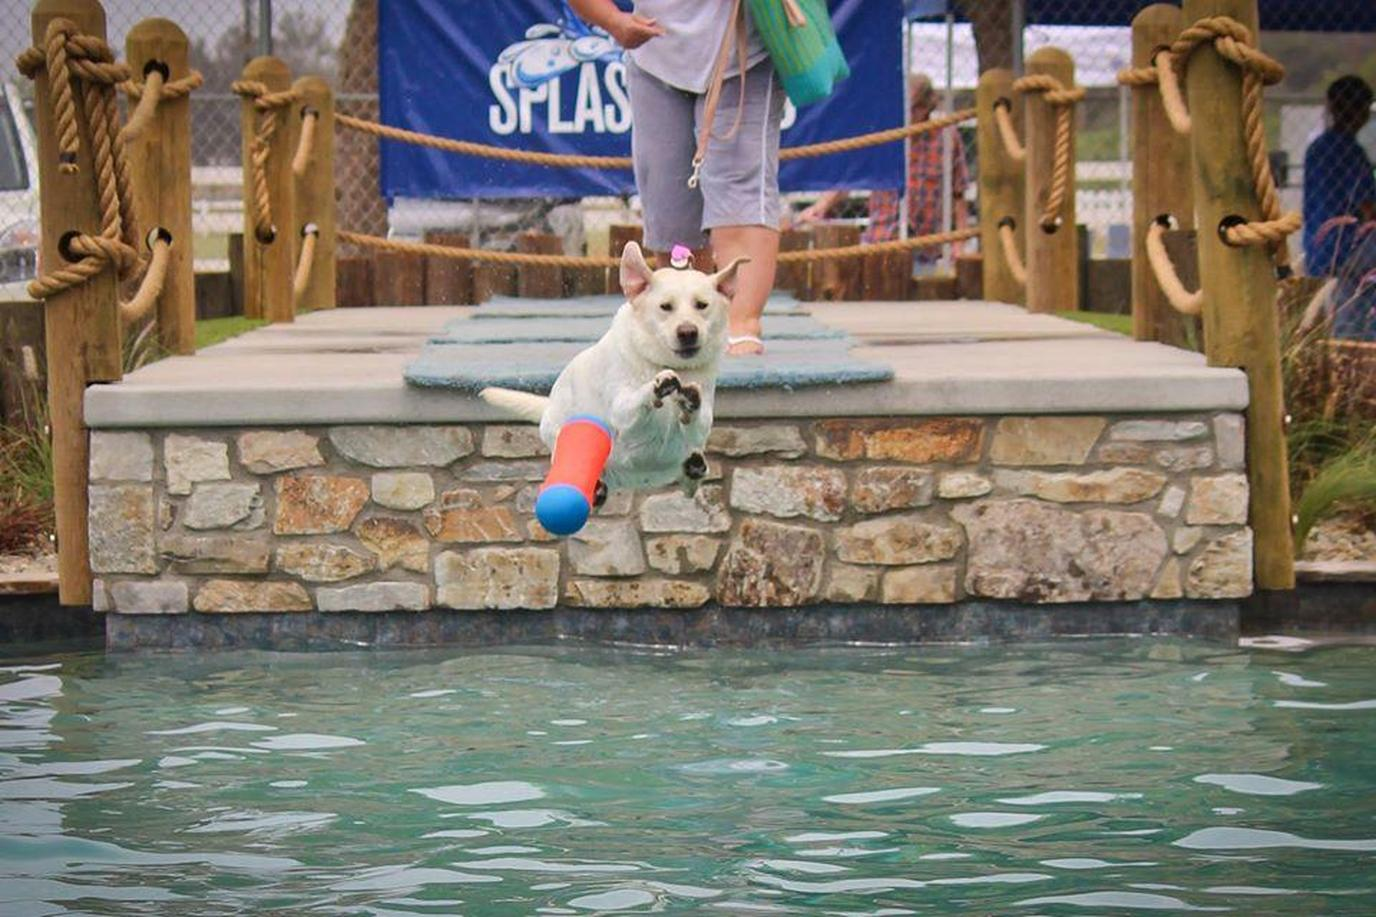 A Dog Jumps Off a Dock While Chasing a Toy at a Doggie Birthday Party.